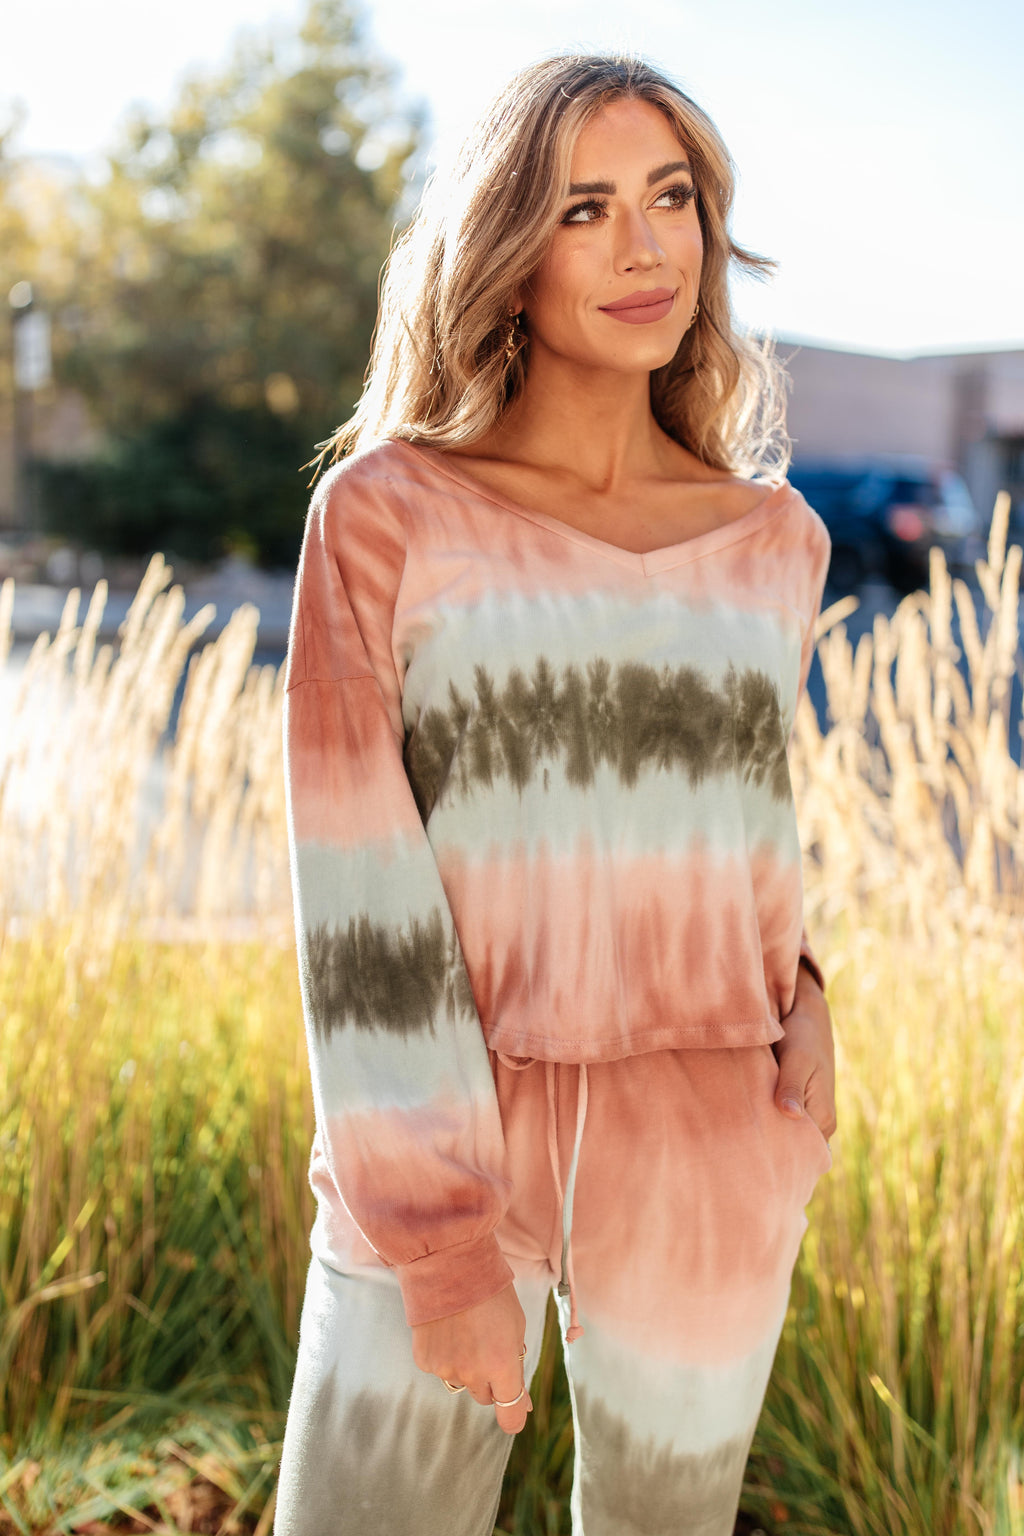 Sunrise To Sunset Top-11-17-2020, 1XL, 2XL, 3XL, BFCM2020, Final Few Friday, Group A, Group B, Group C, Large, Made in the USA, Medium, Small, Tops, XL, XS-Womens Artisan USA American Made Clothing Accessories